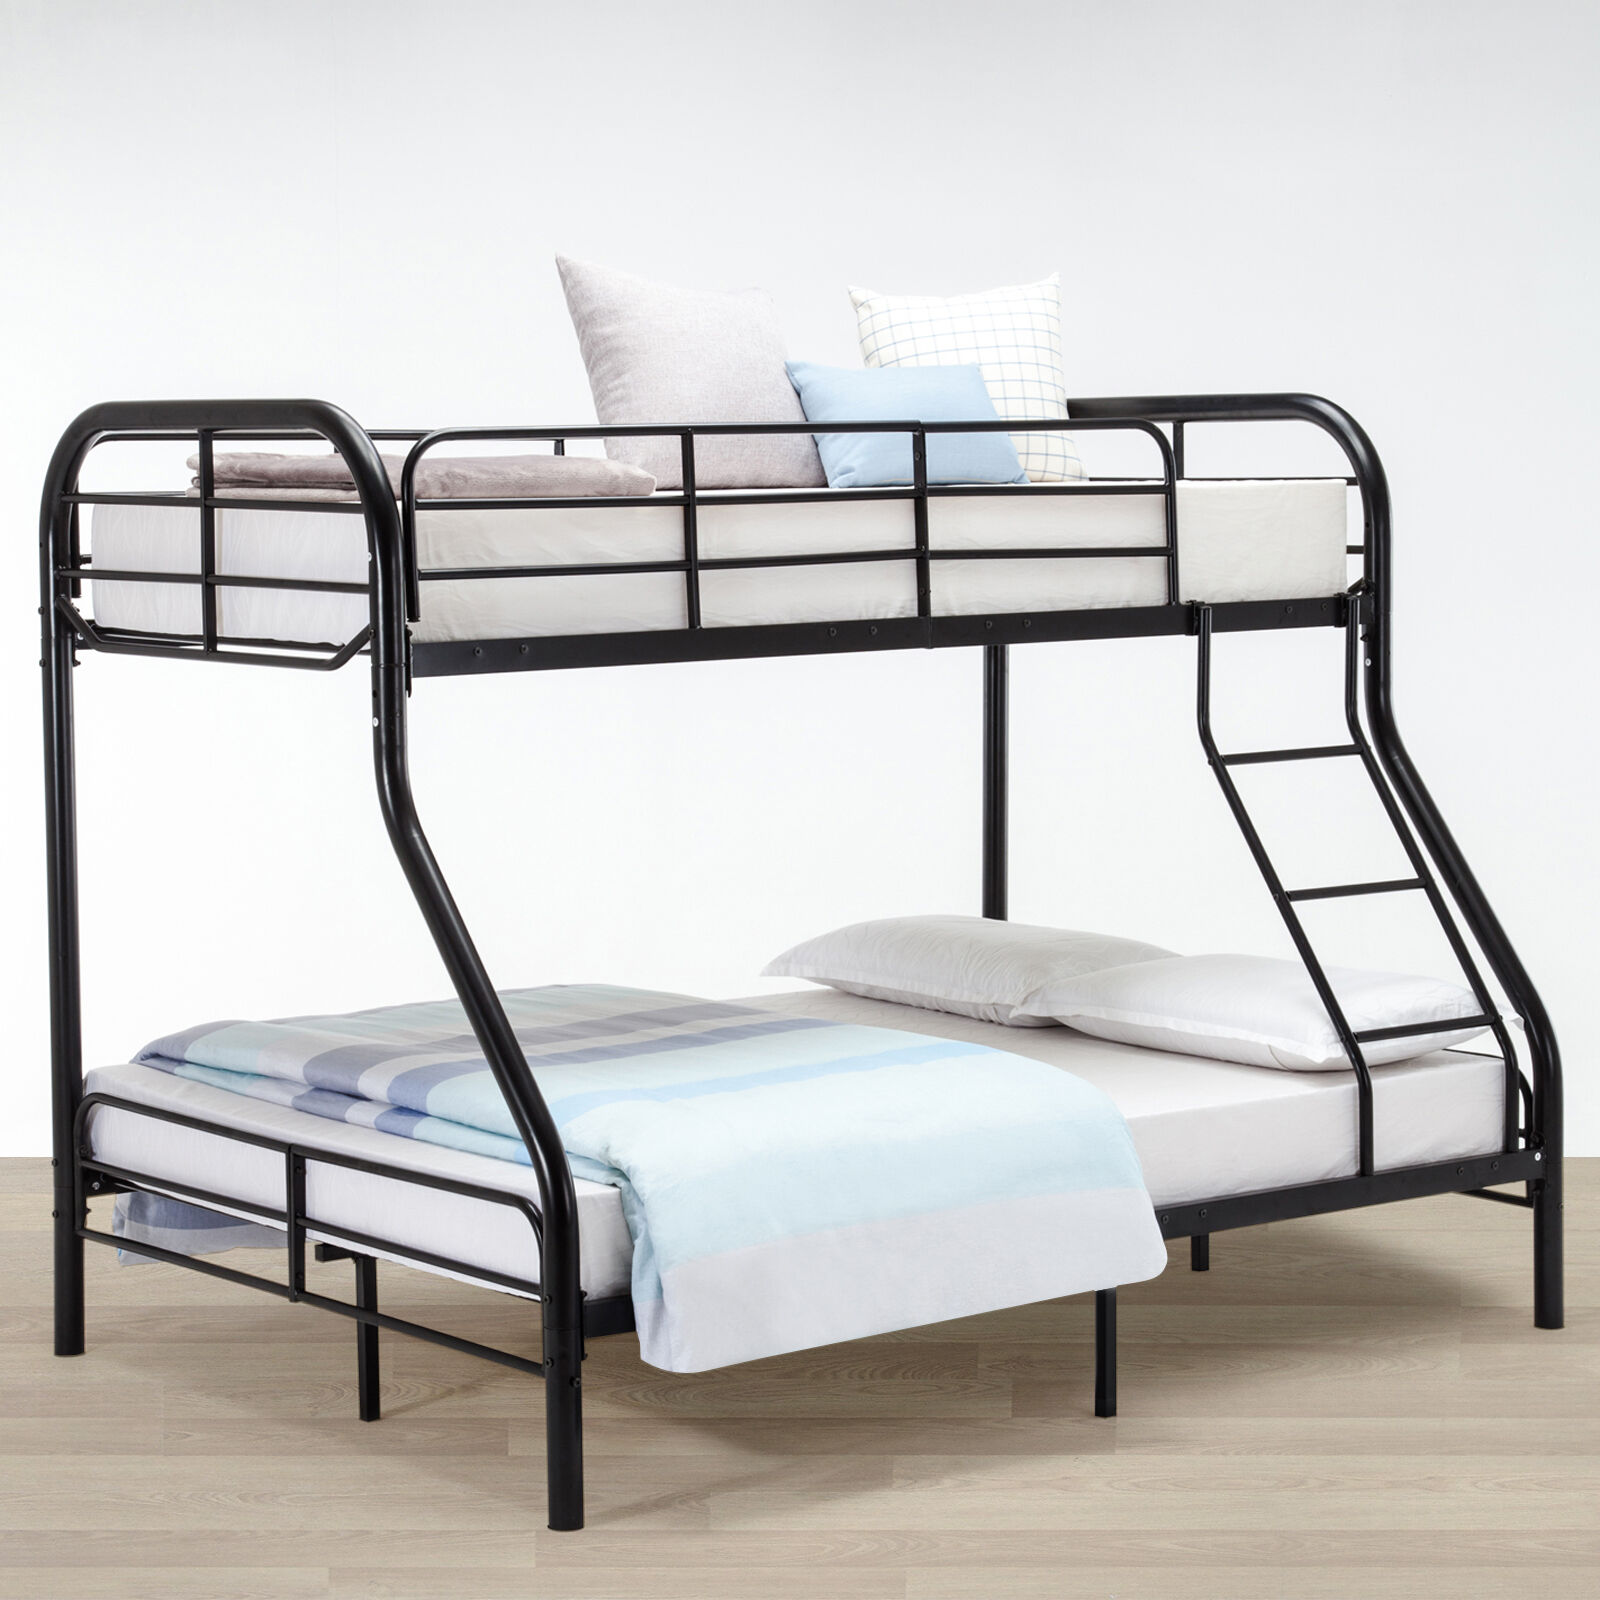 epoch shop over bunk original beds bed dakota twin full design